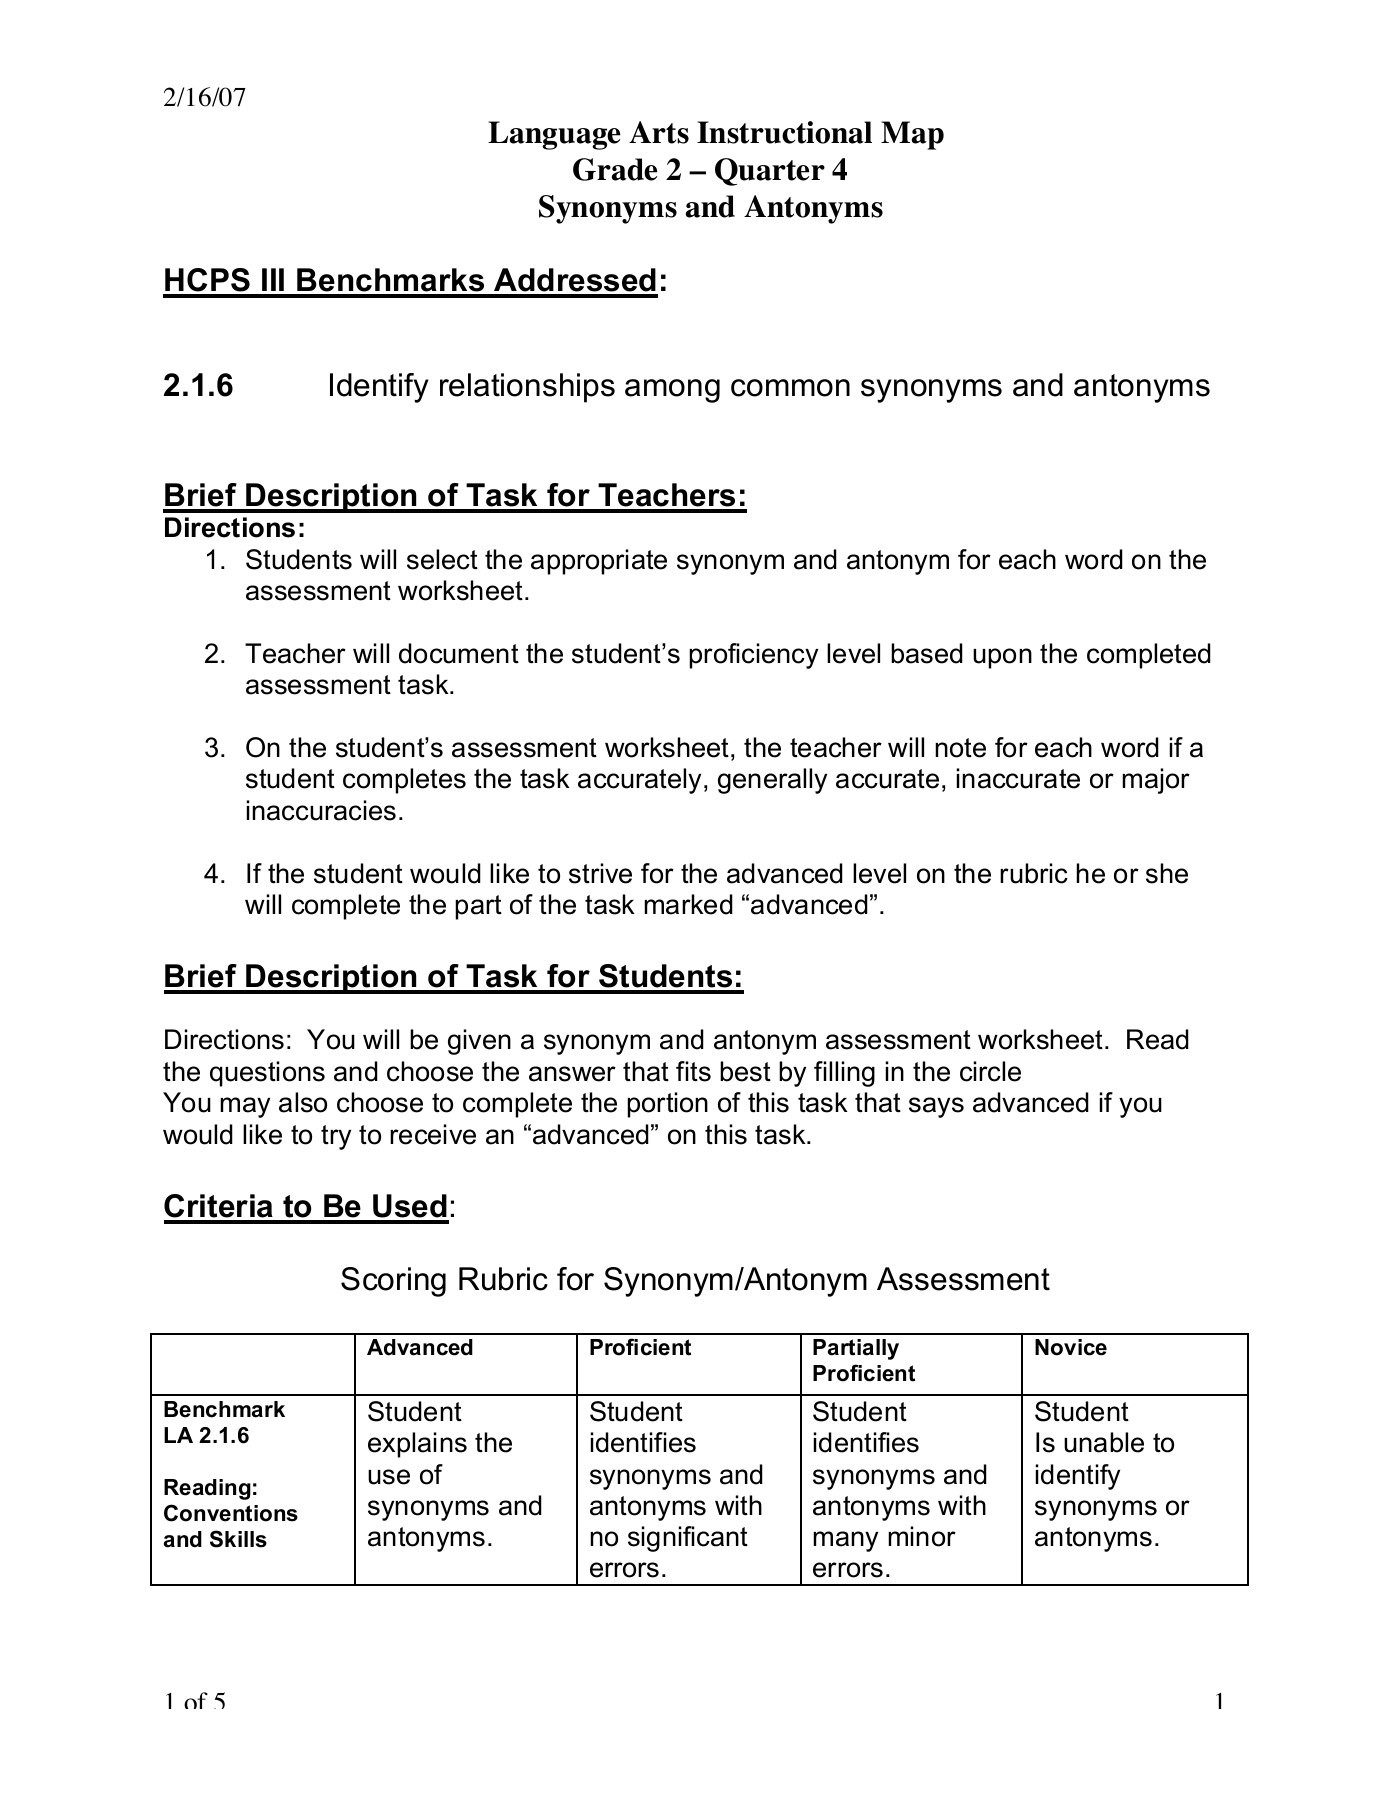 hight resolution of 2/16/07 Language Arts Instructional Map Grade 2 ... Pages 1 - 5 - Flip PDF  Download   FlipHTML5